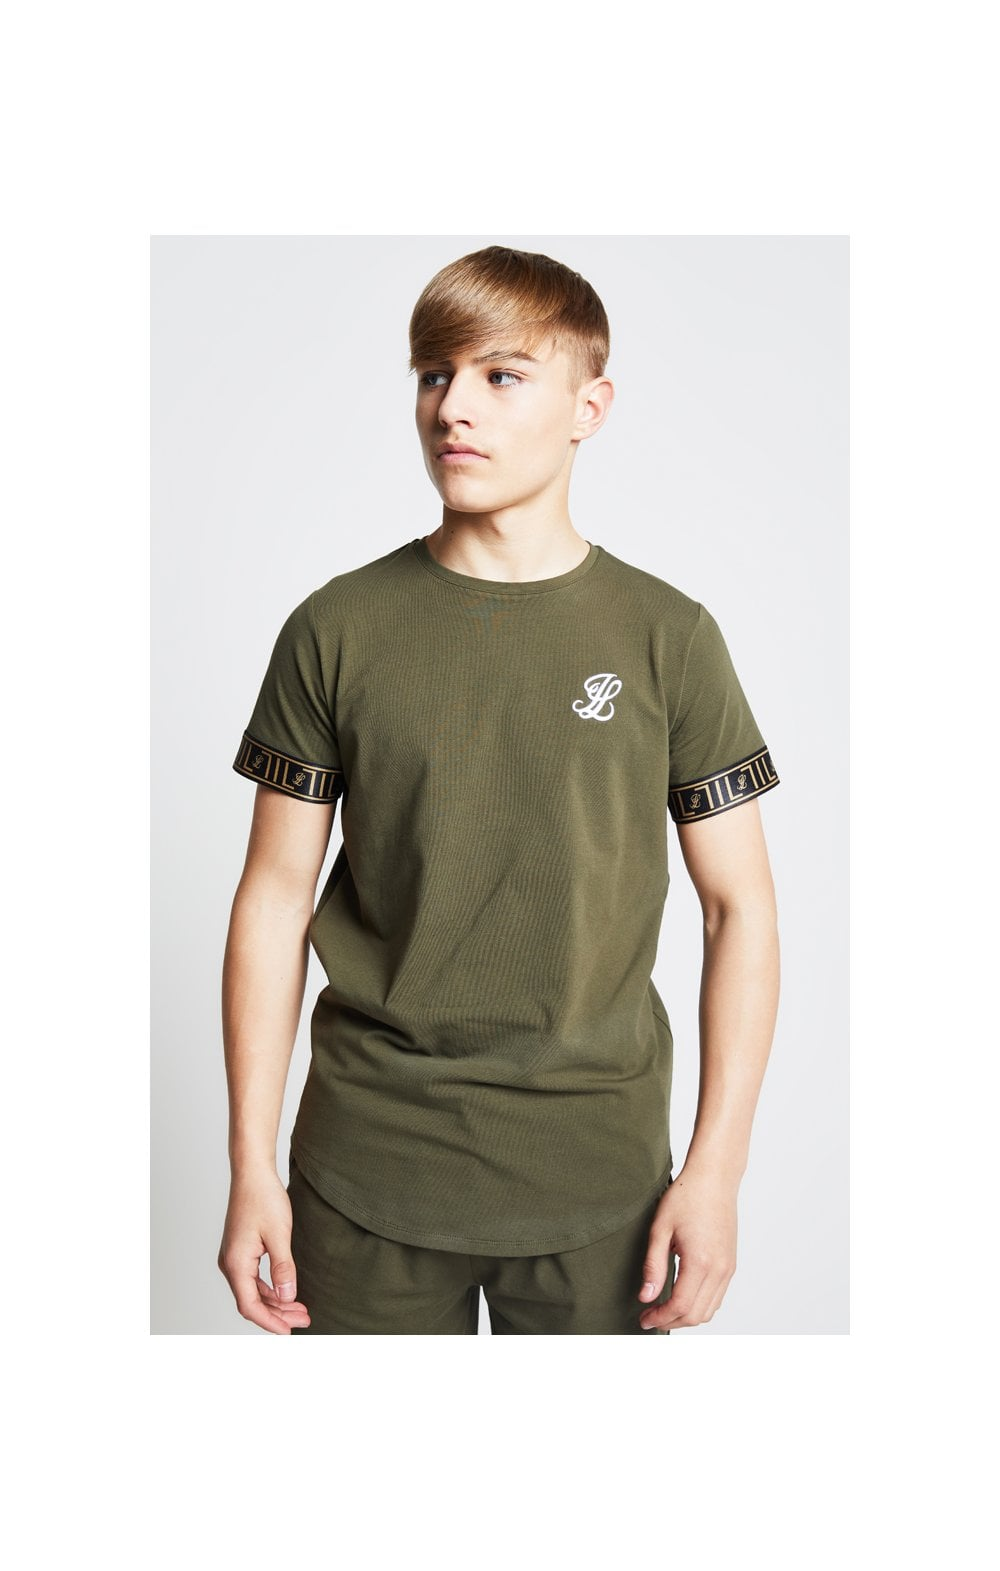 Illusive London Tech Tee - Khaki (1)